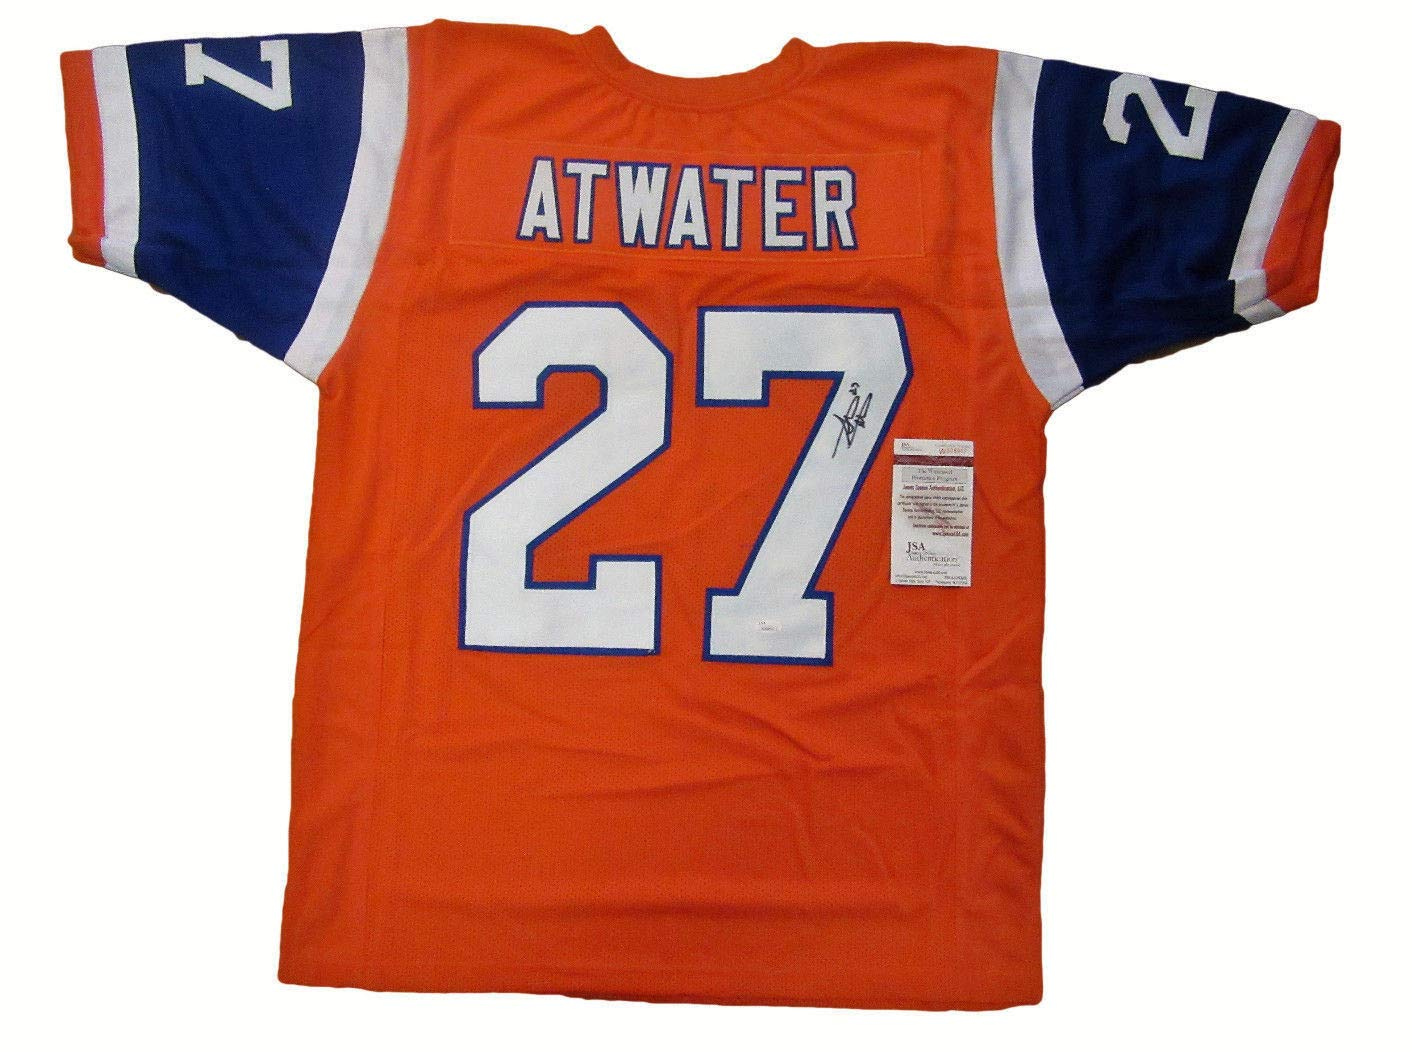 competitive price 4dada e61e4 Steve Atwater Autographed Signed Throwback Denver Broncos ...